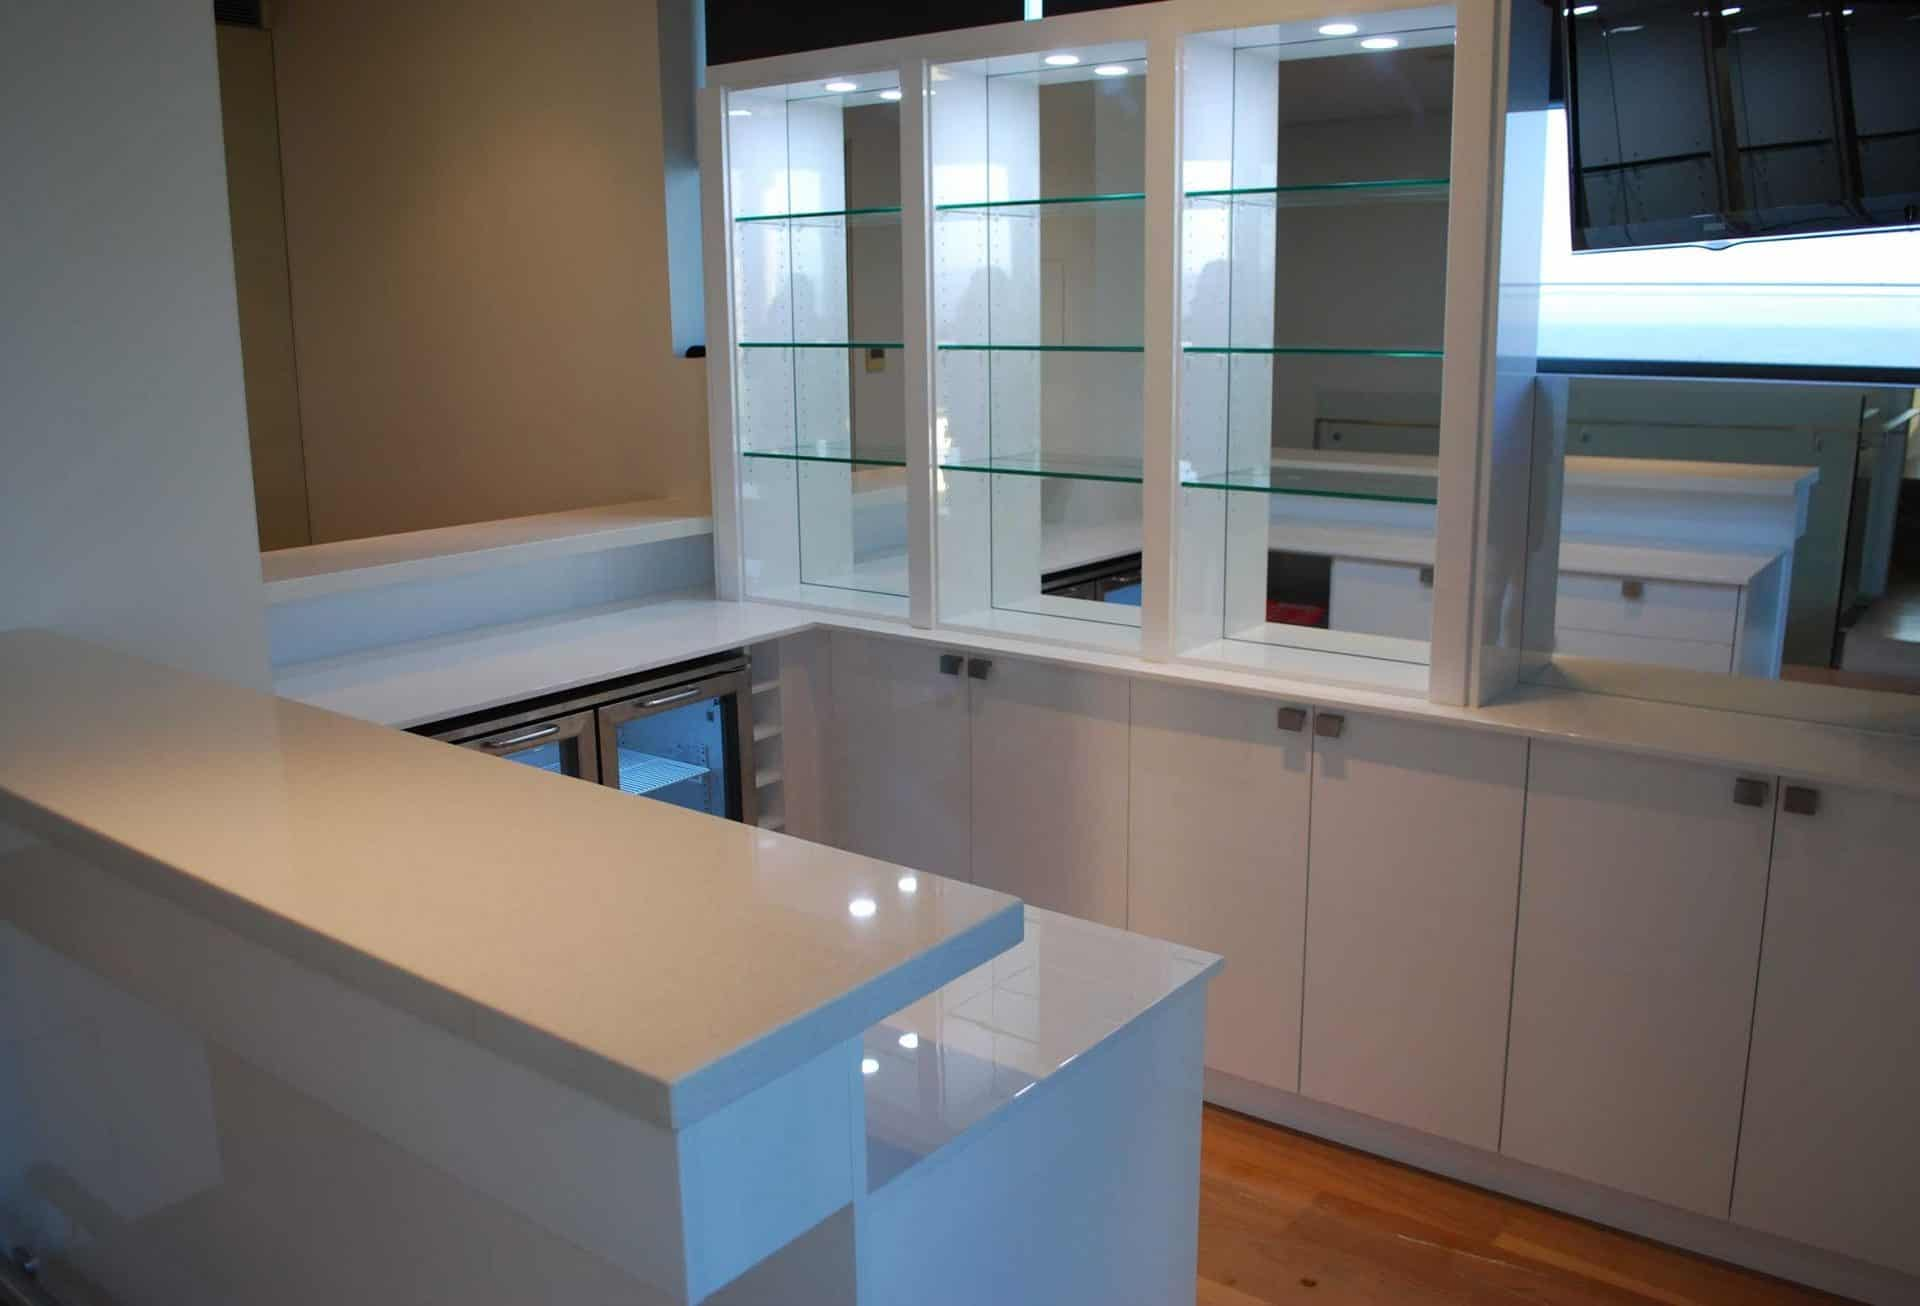 A beautiful example of a custom built home bar with white counter tops and cupboard space and glass shelving with mirror backing and a bar fridge under the counter. Matching the house perfectly.